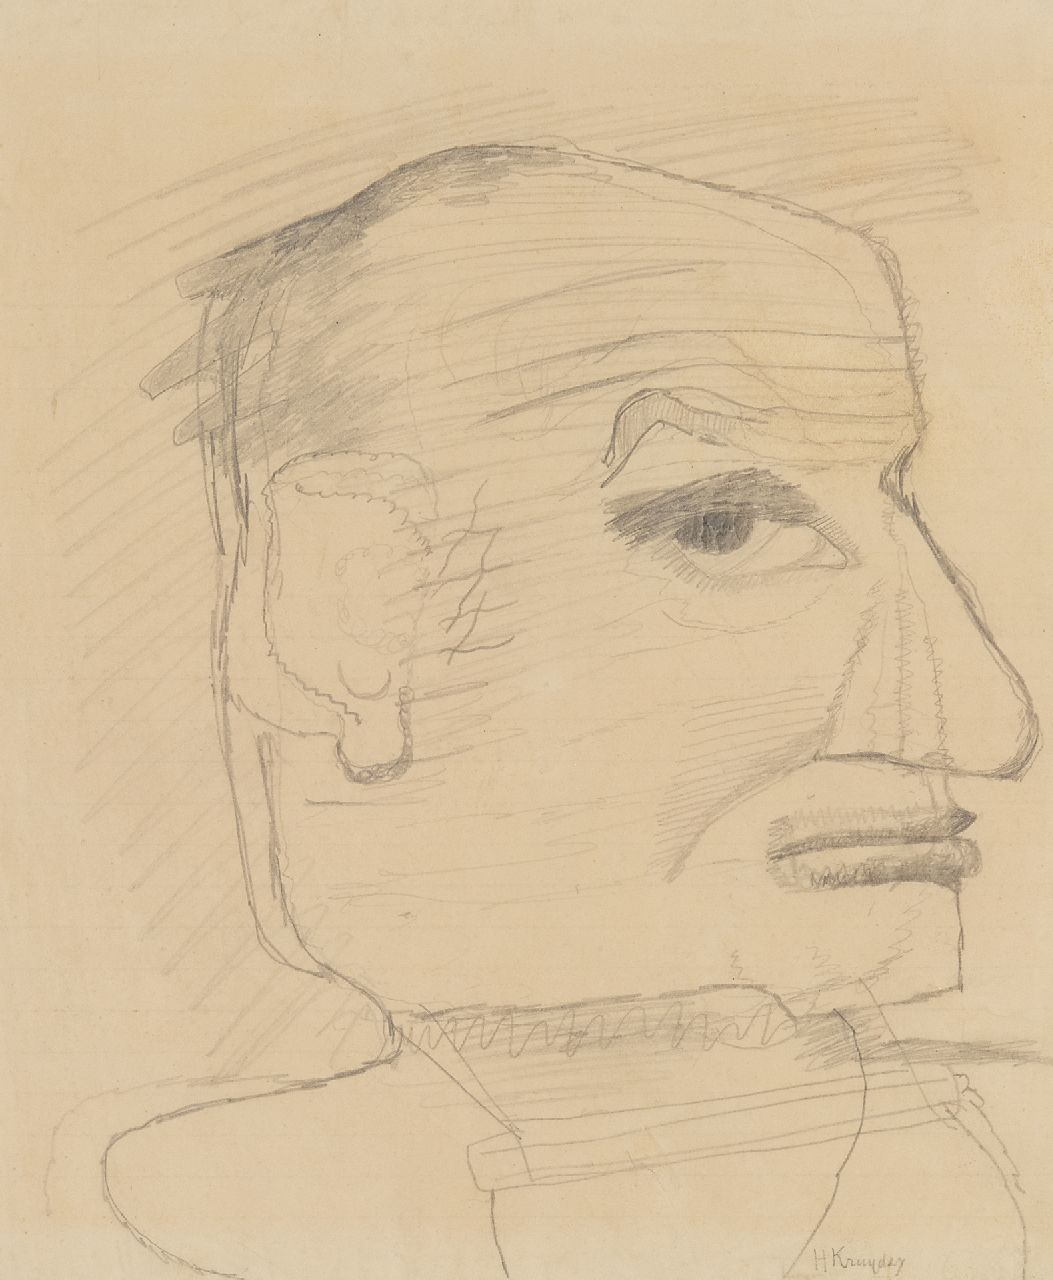 Kruyder H.J.  | 'Herman' Justus Kruyder | Watercolours and other works on paper offered for sale | Self-portrait (probably), pencil on paper 25.0 x 21.0 cm, signed l.r.